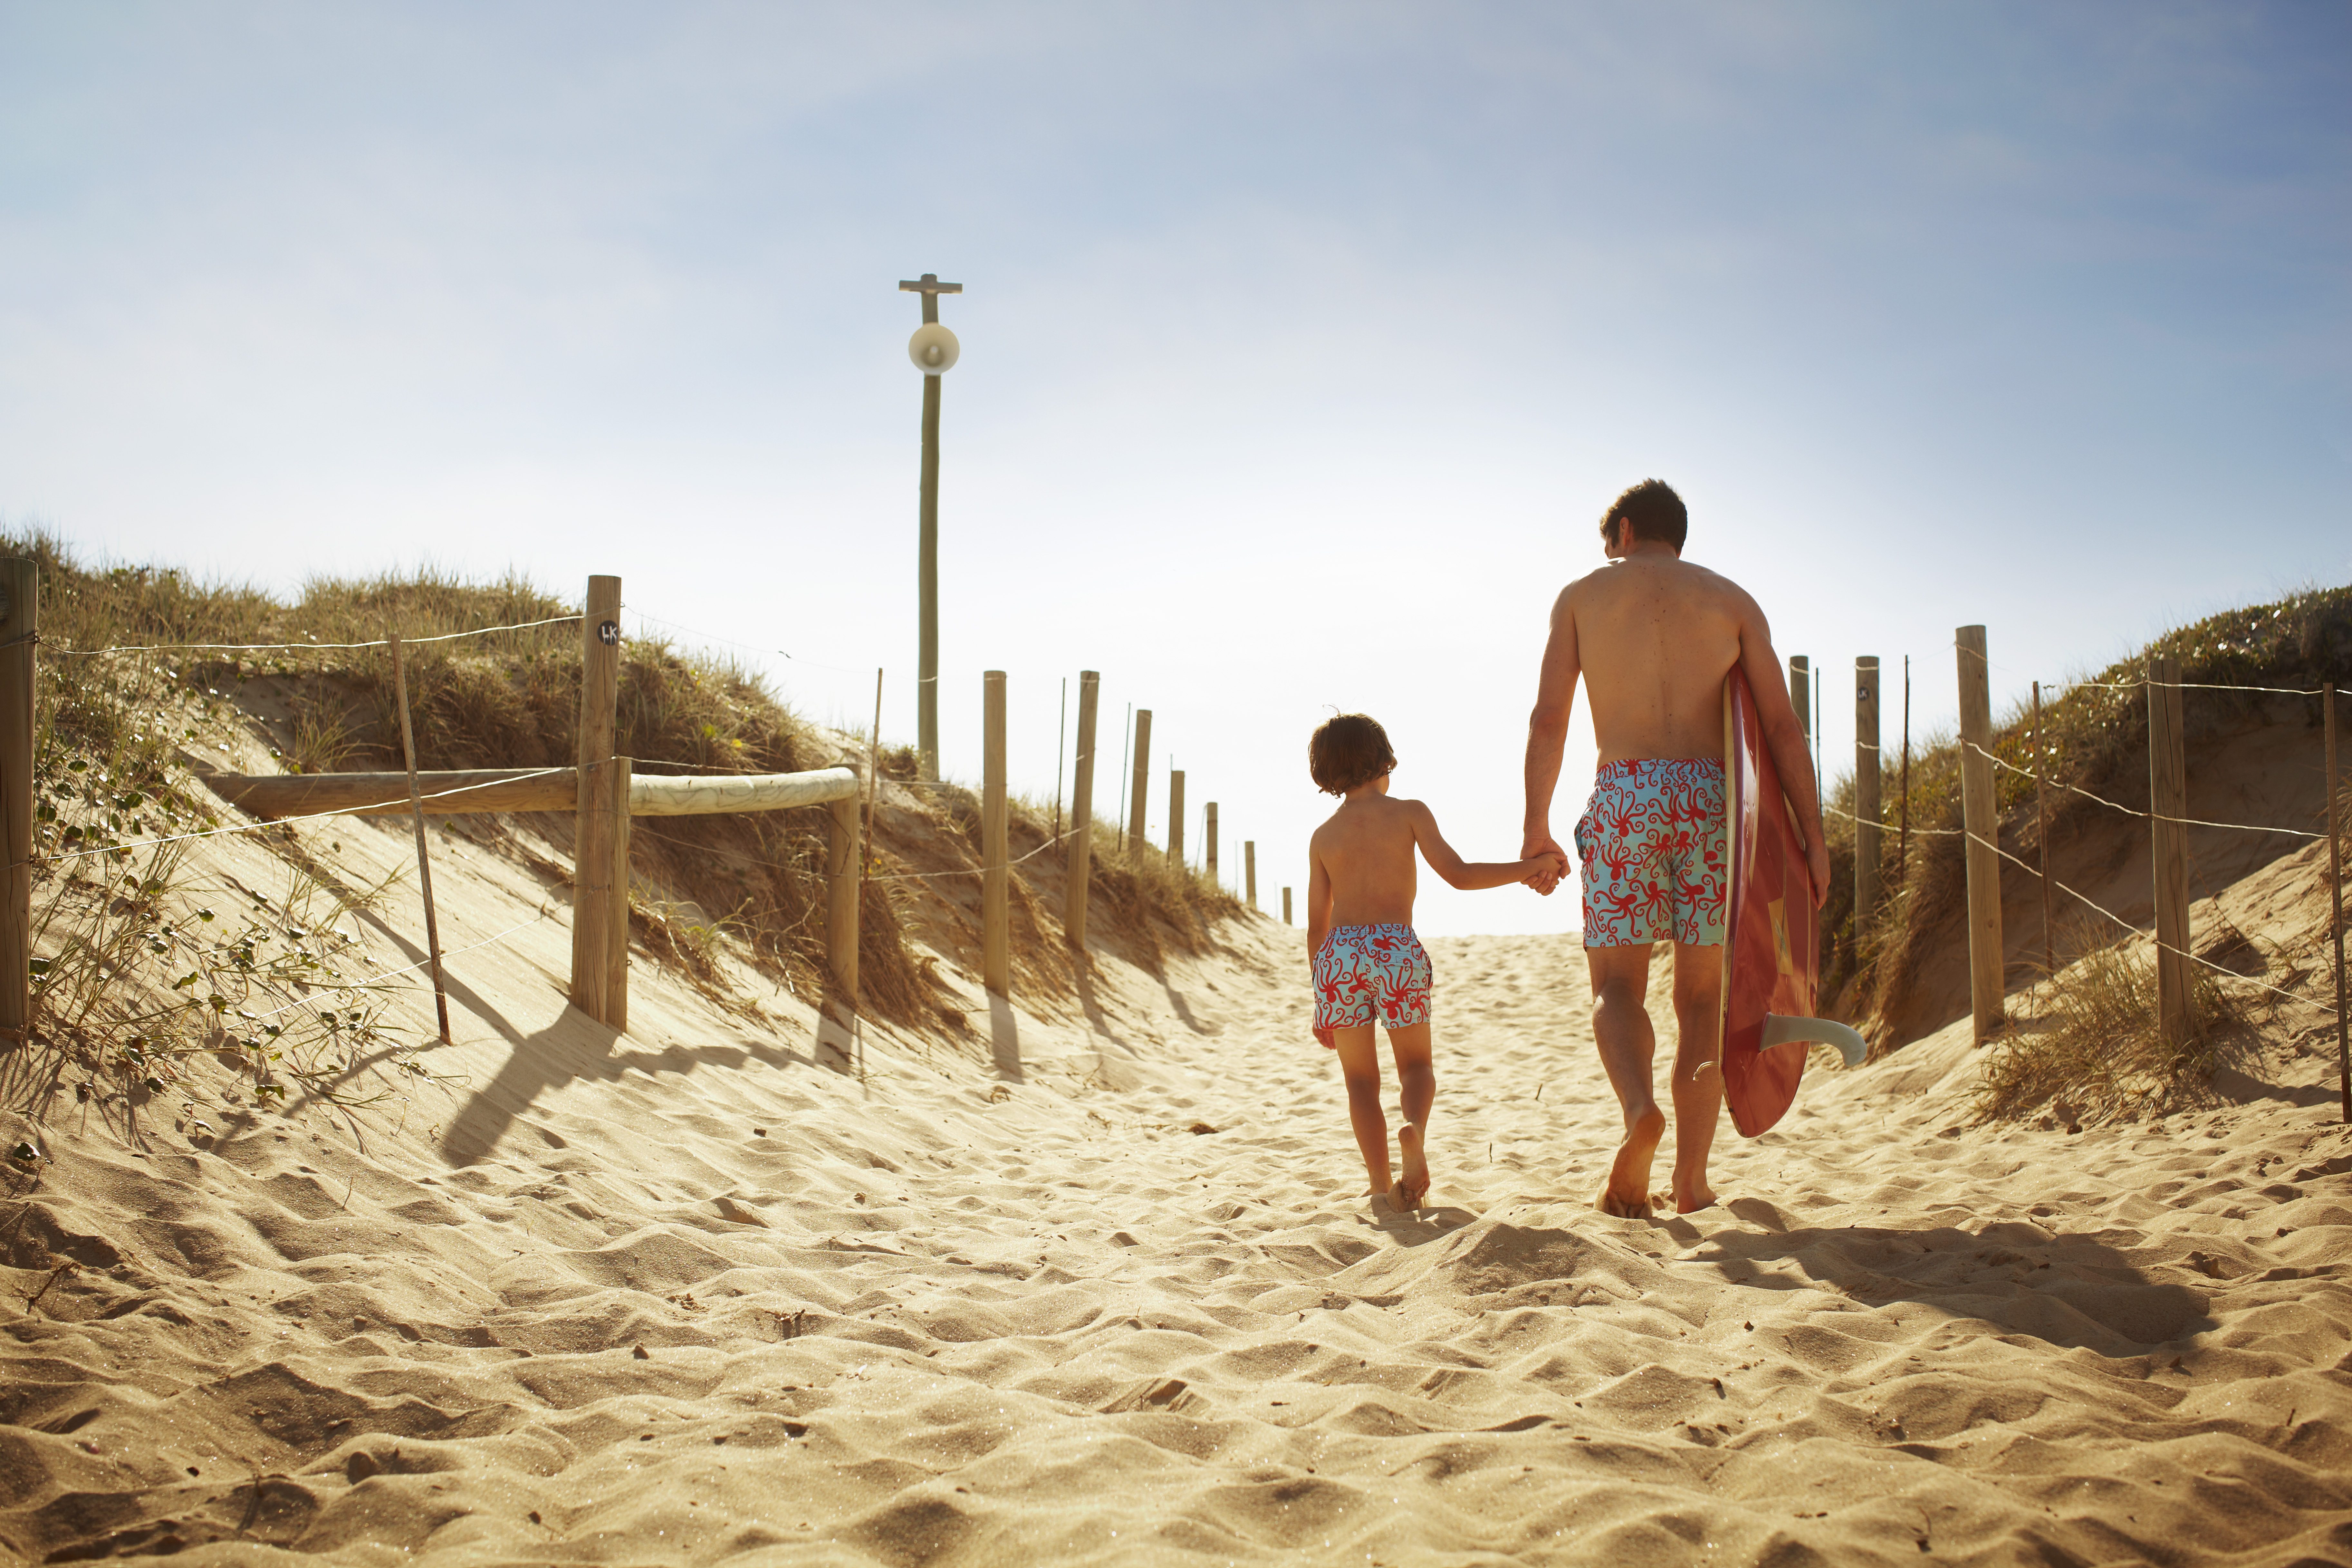 Swimwear For The Men & Boys: Tom & Teddy's Cool Matching Swimming Trunks For Dads And Sons